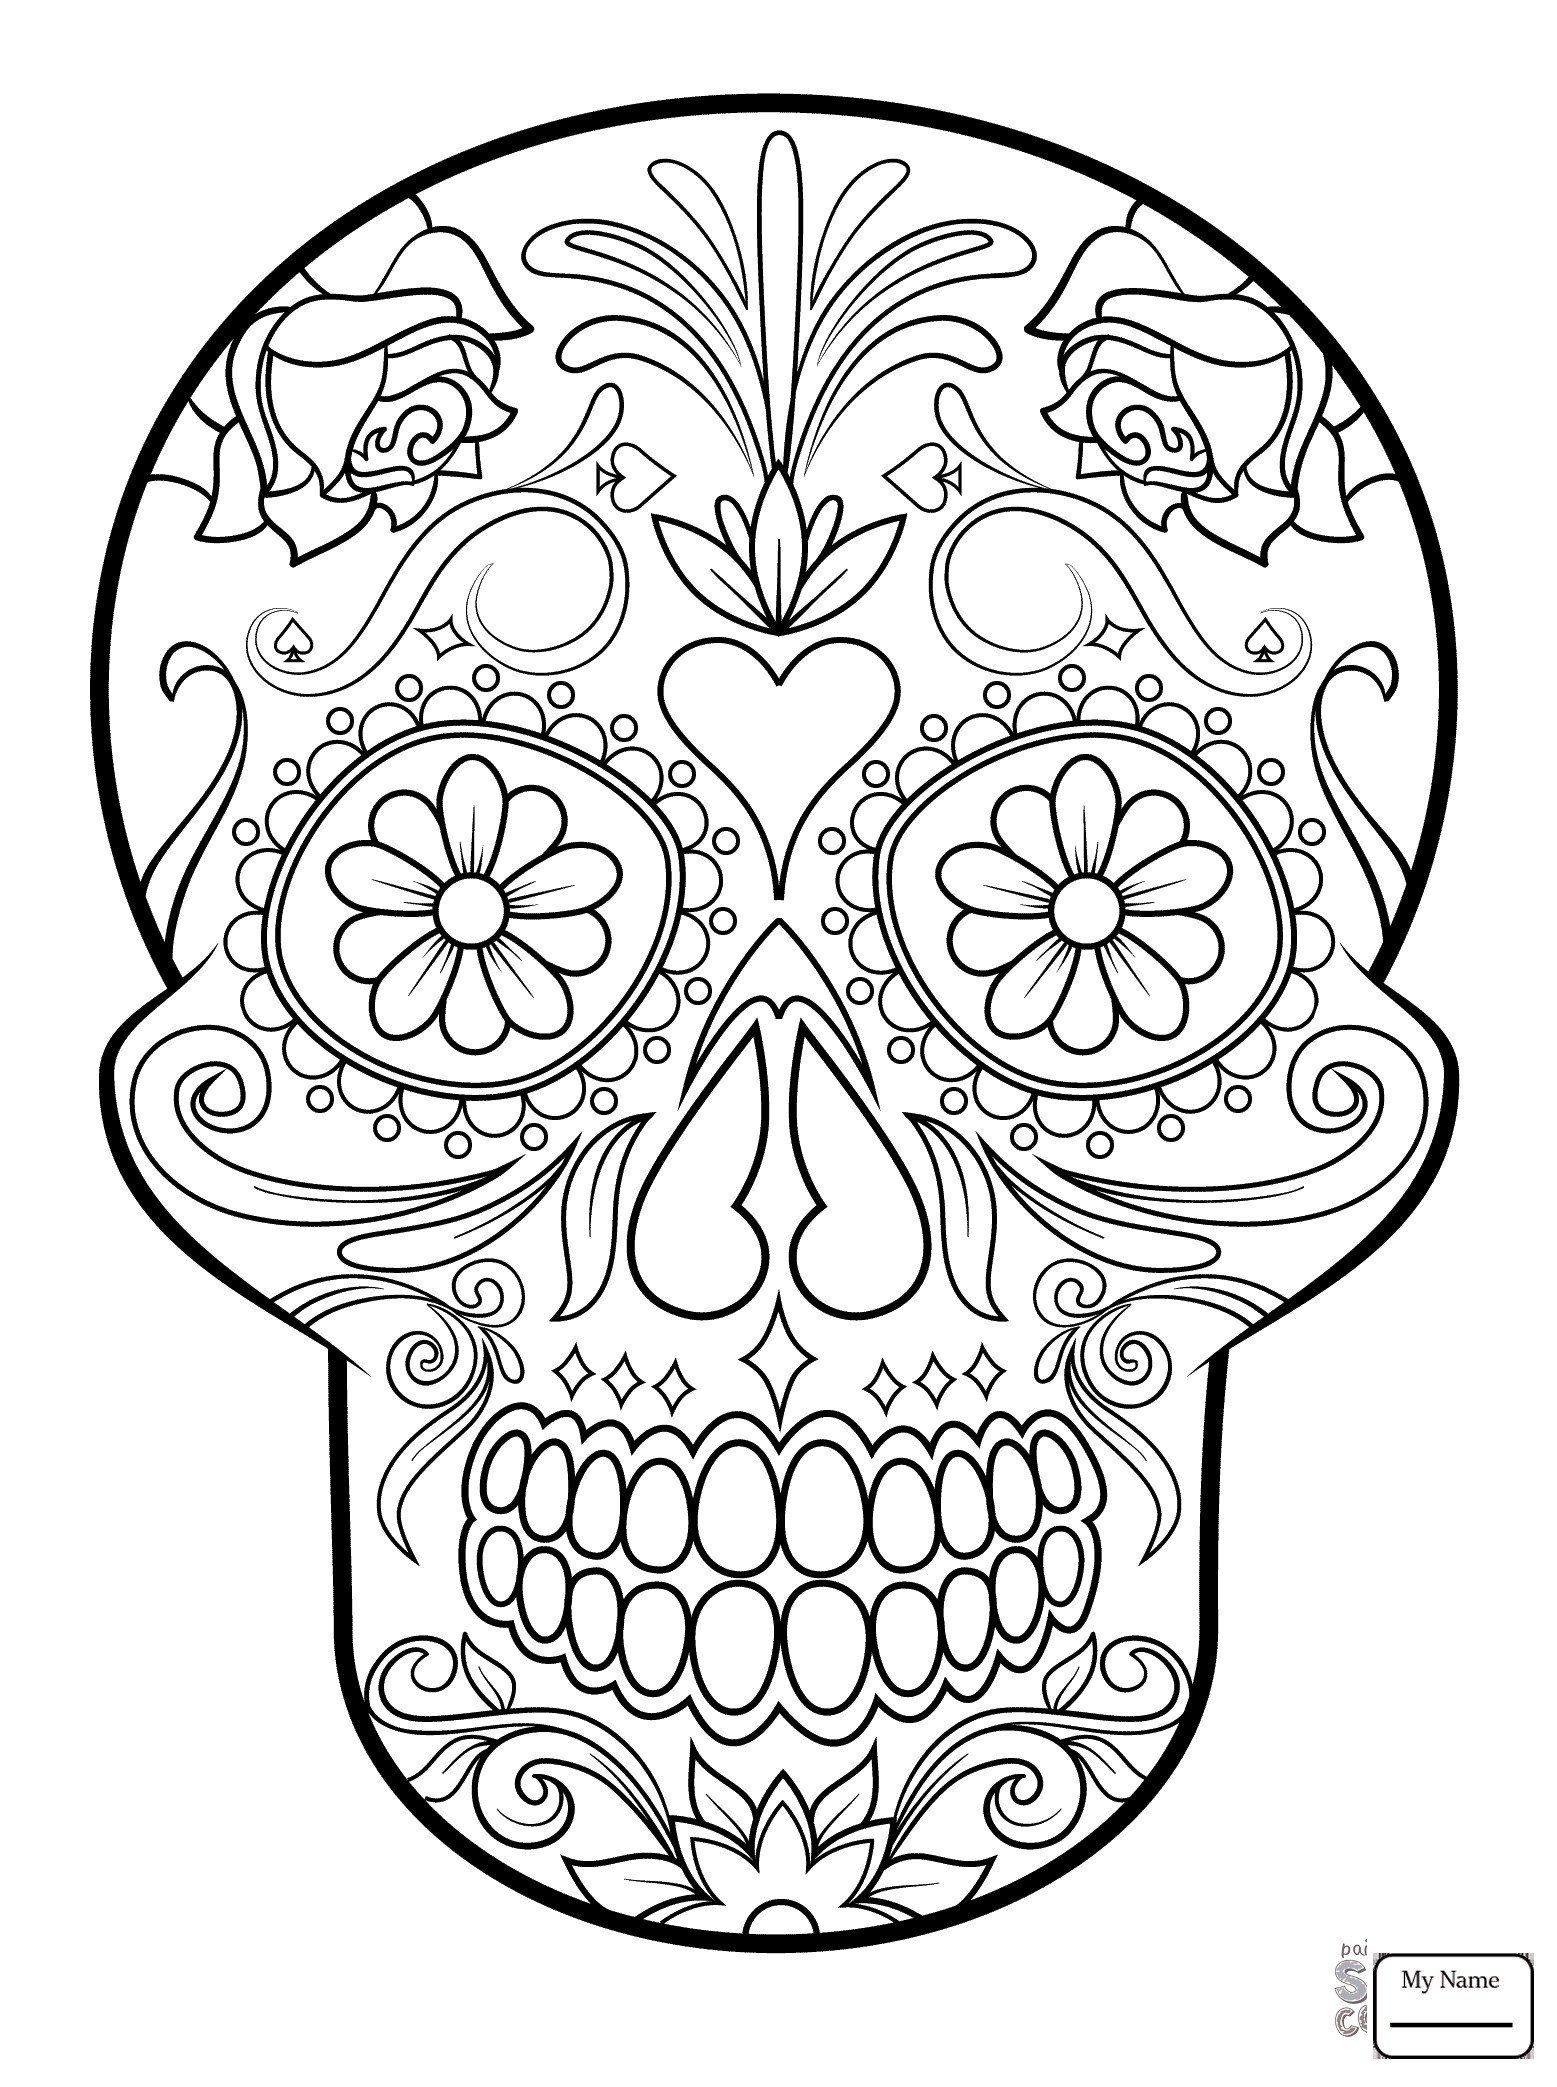 Dia De Los Muertos Coloring Pages Unique Coloring Pages 49 Day The